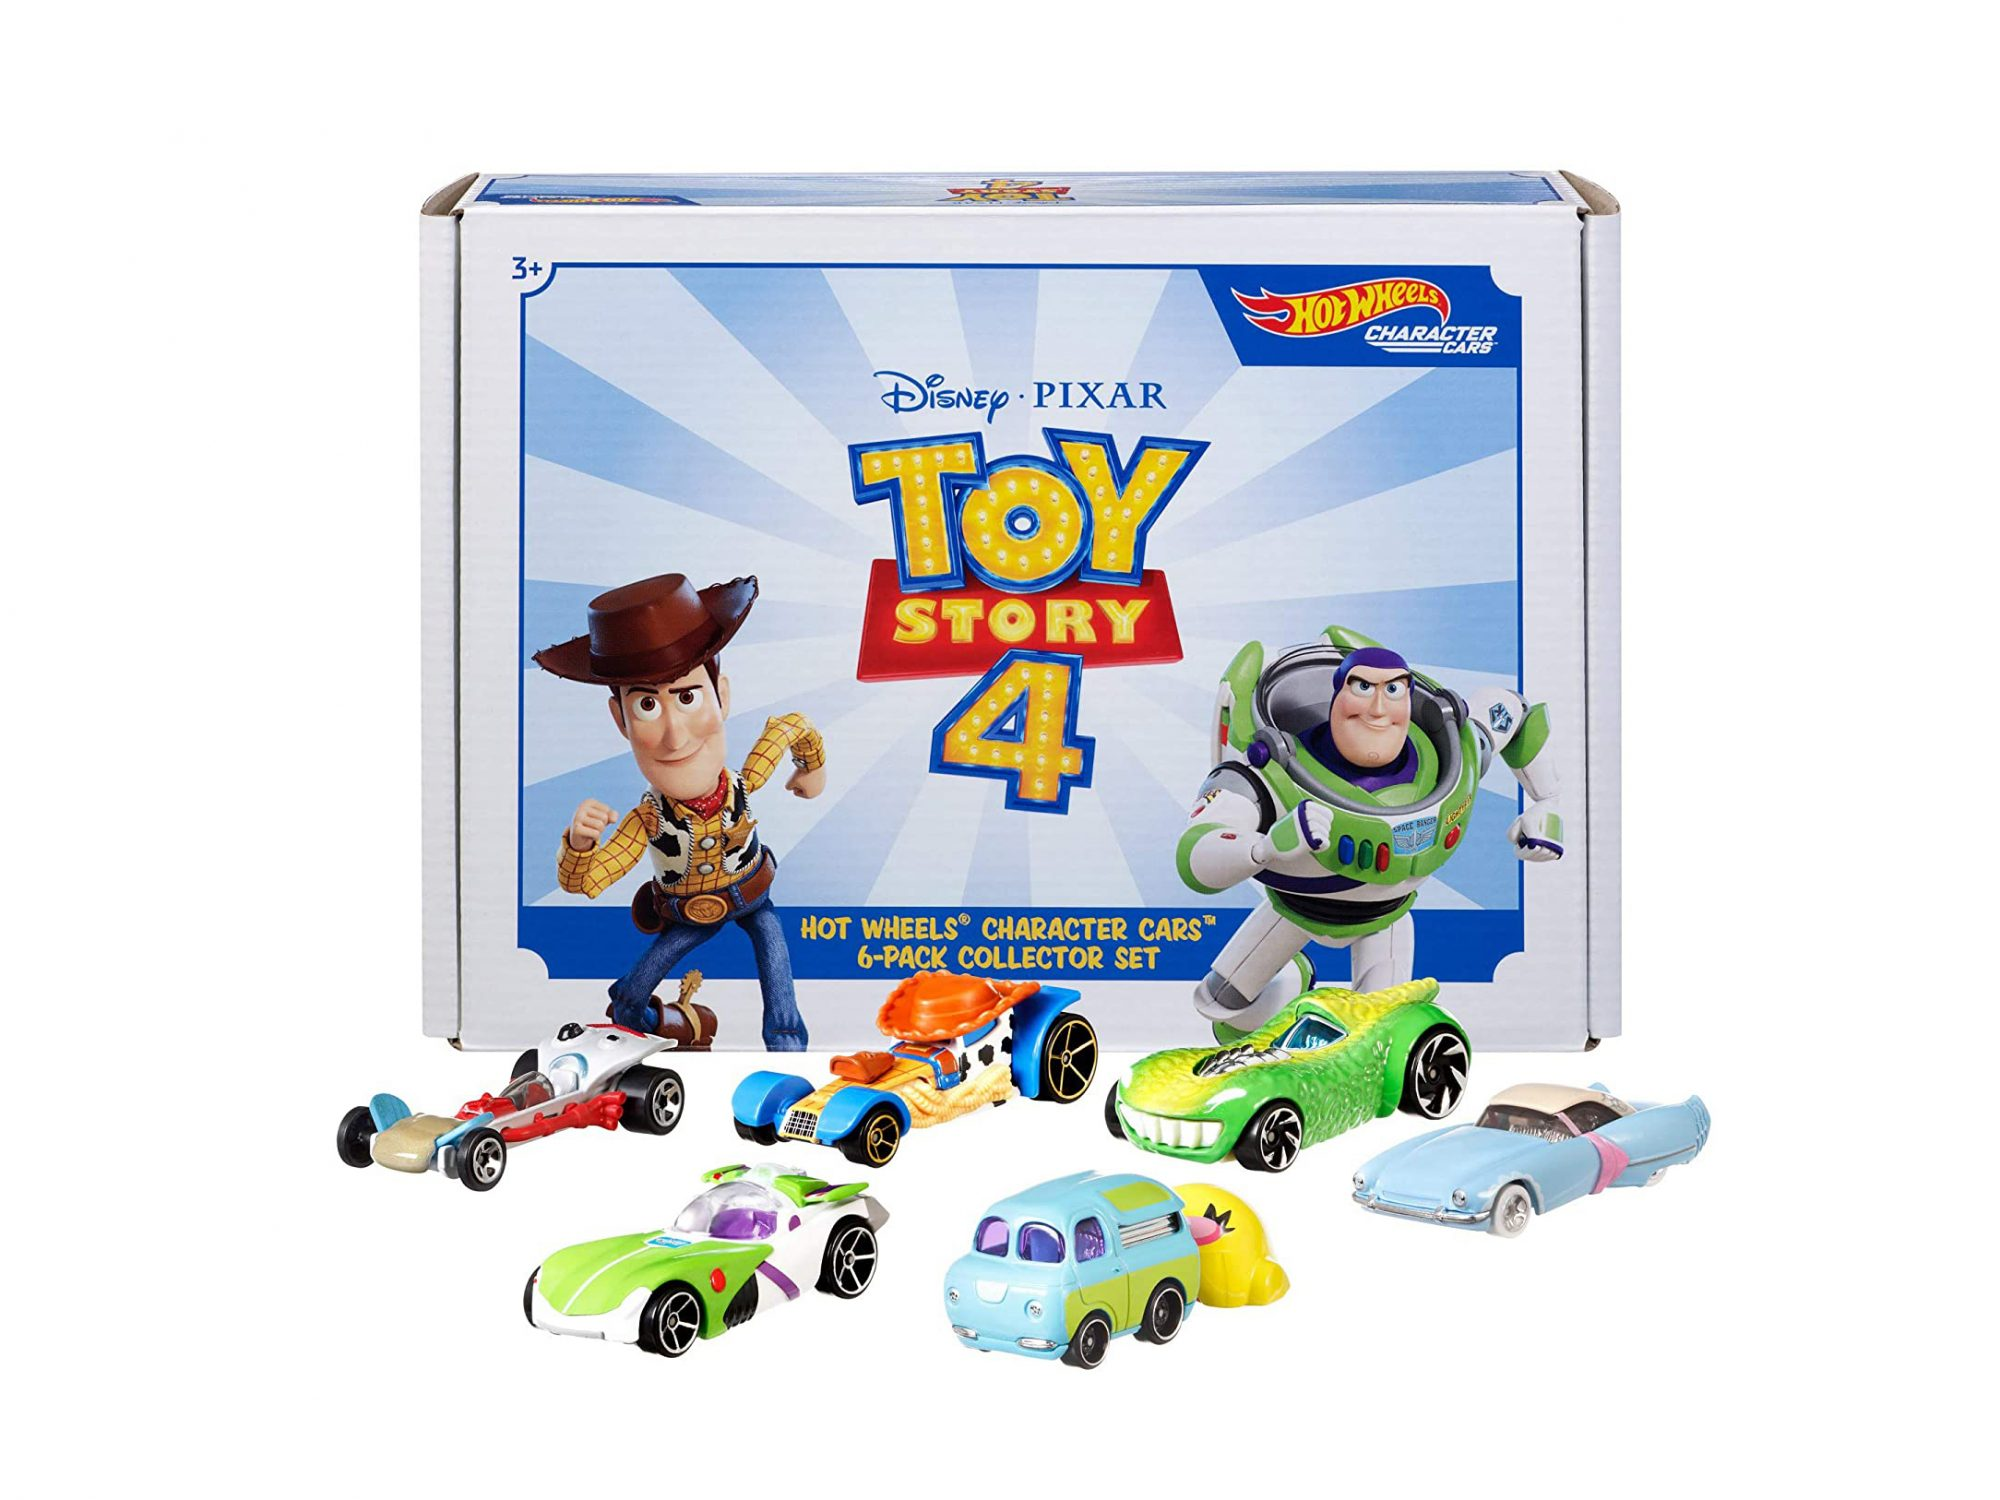 Toy Story Hot Wheels Set